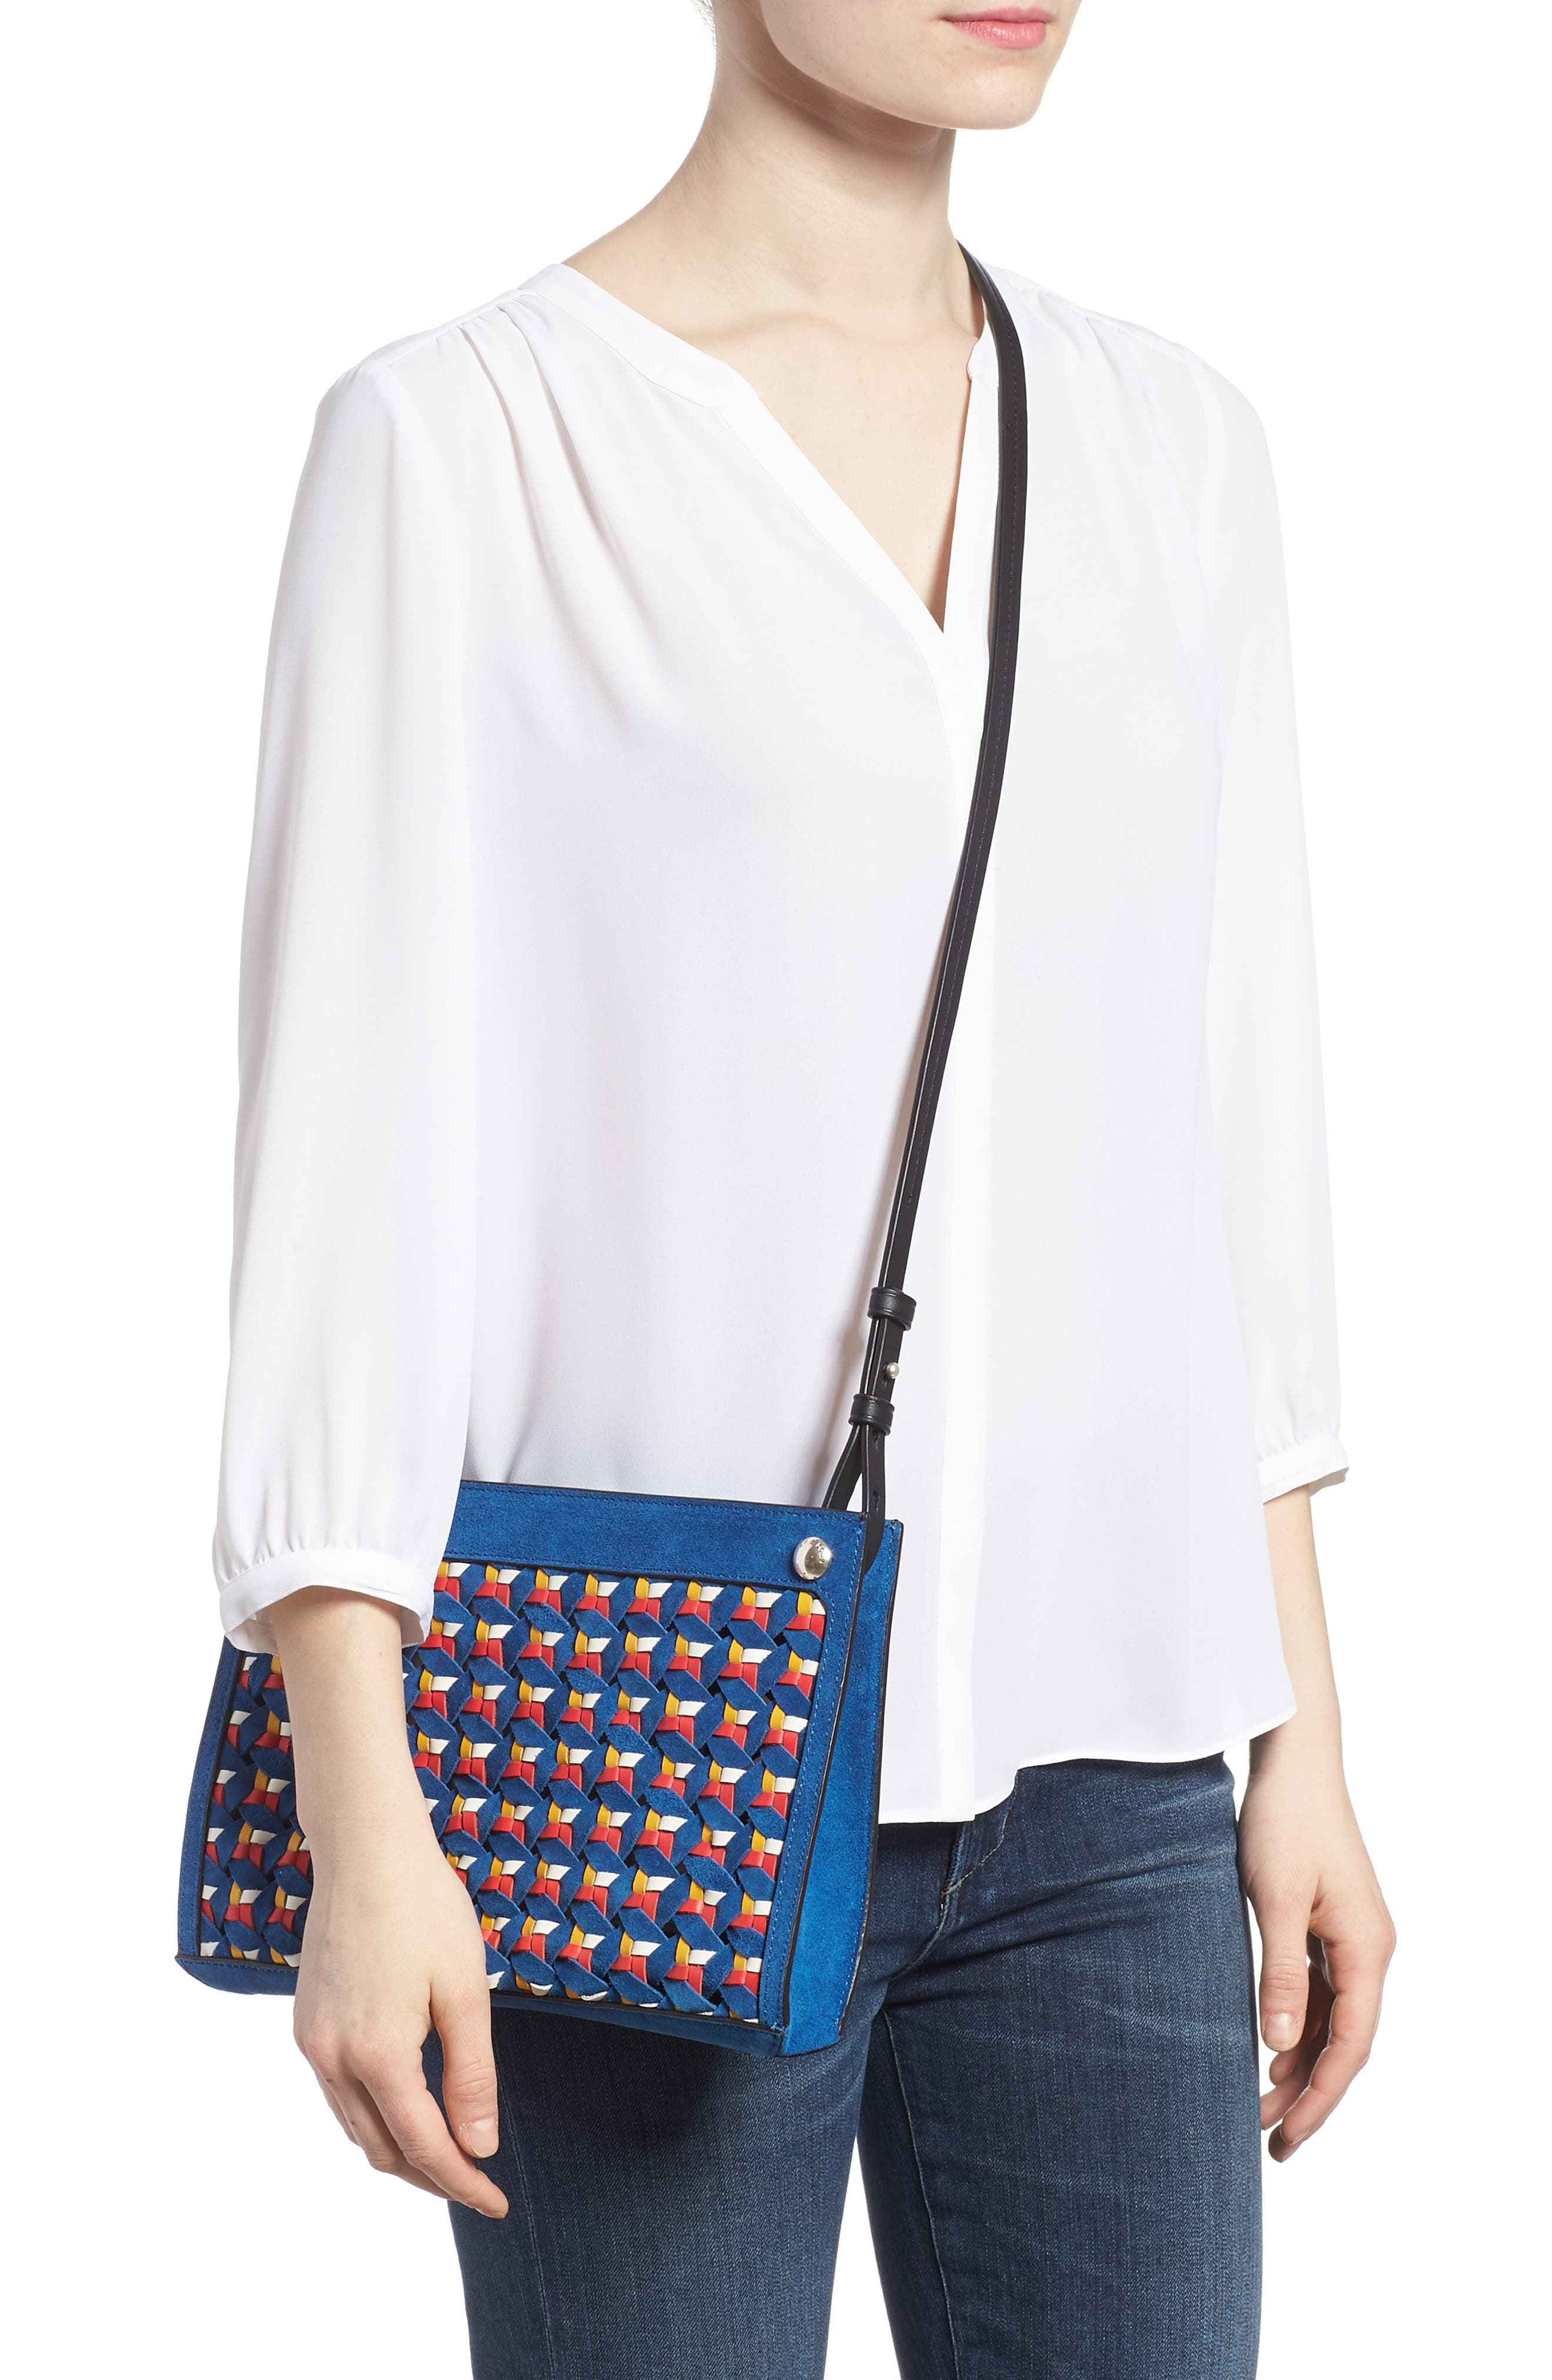 Compass Woven Suede & Leather Crossbody Bag,                             Alternate thumbnail 2, color,                             Multi Woven